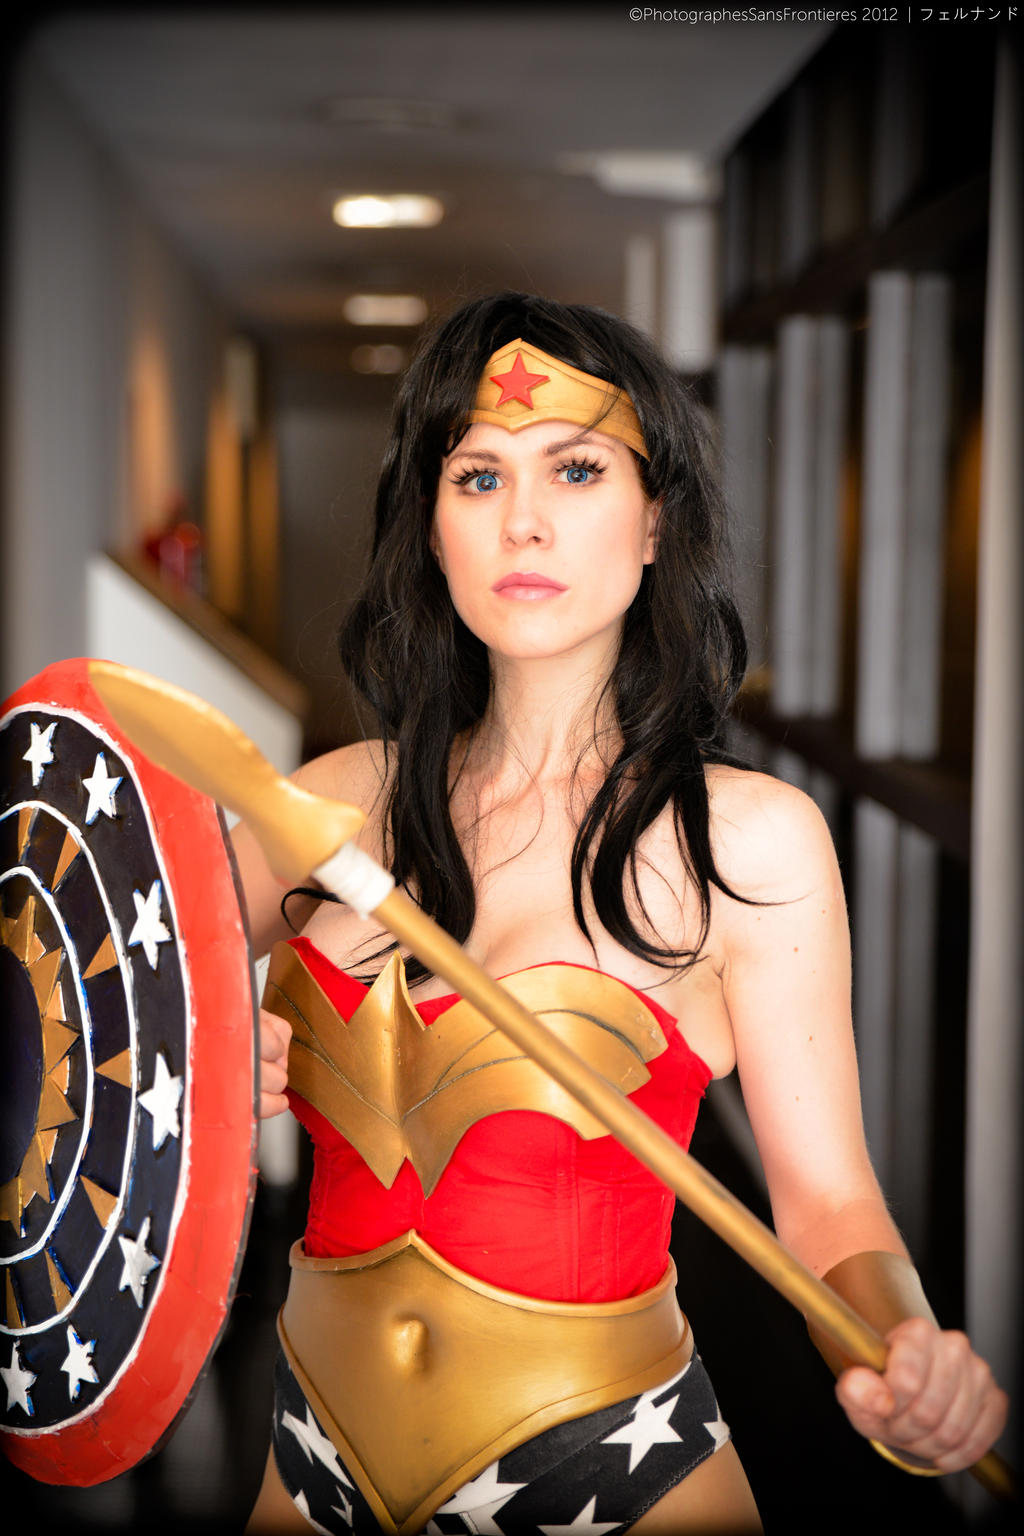 The Amazon itself: Wonder Woman by ferpsf